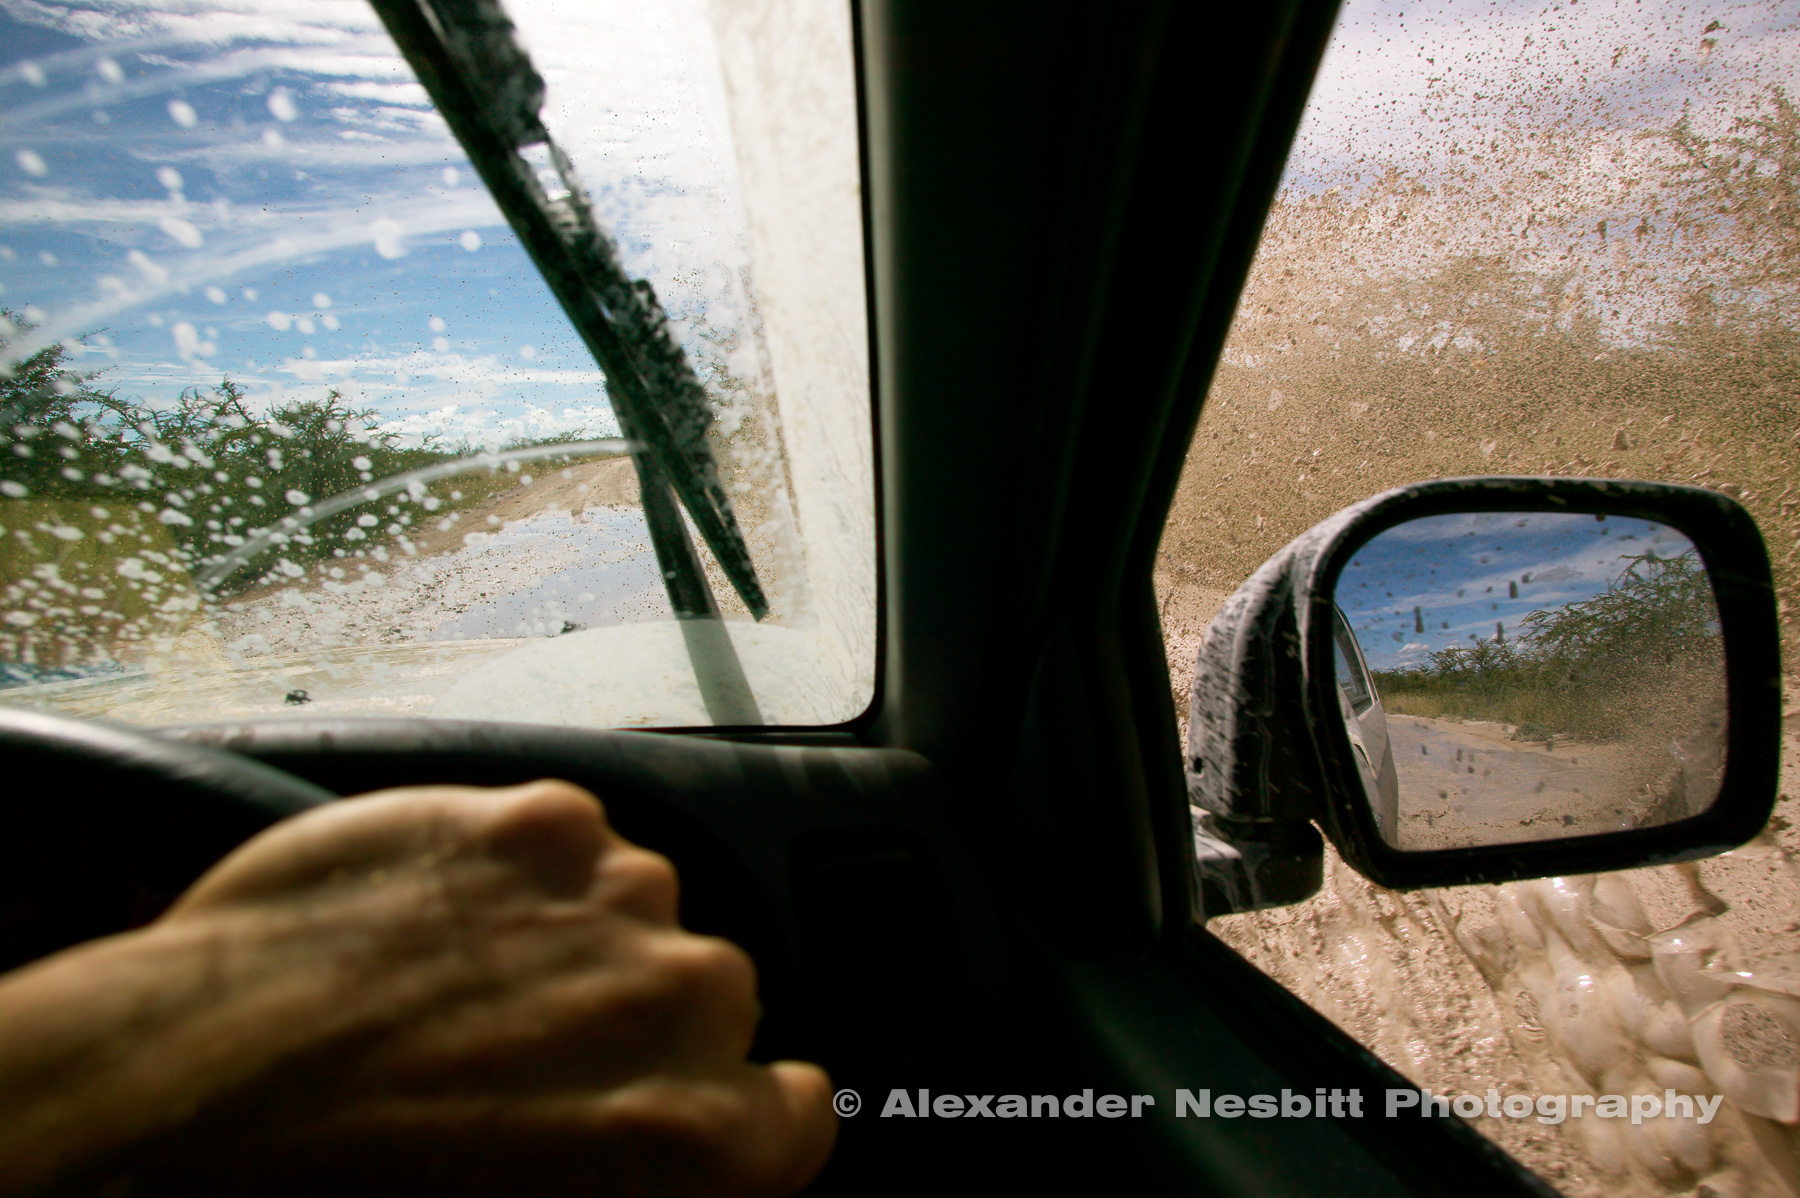 Namibia, Etosha Park 2004 - Drivers hand on wheel of 4x4 while splashing through mud of flooded tracks in Etosha park.